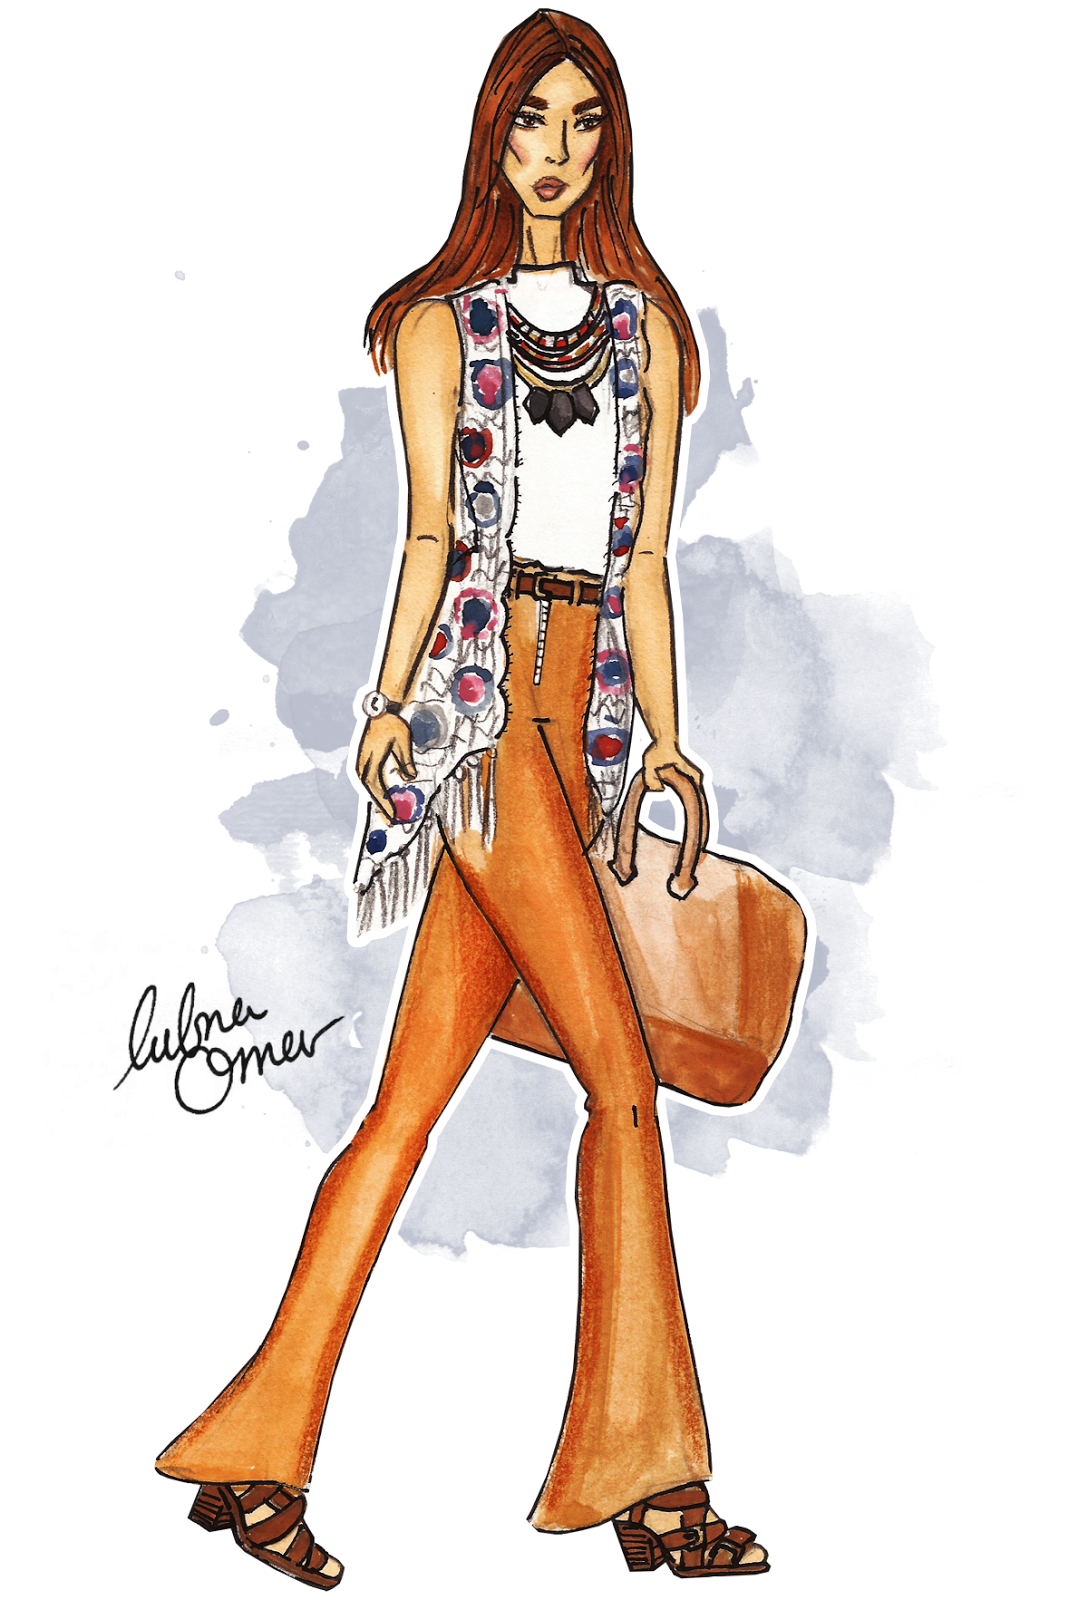 back to school outfit inspiration 70s fever illustration by lubna omar